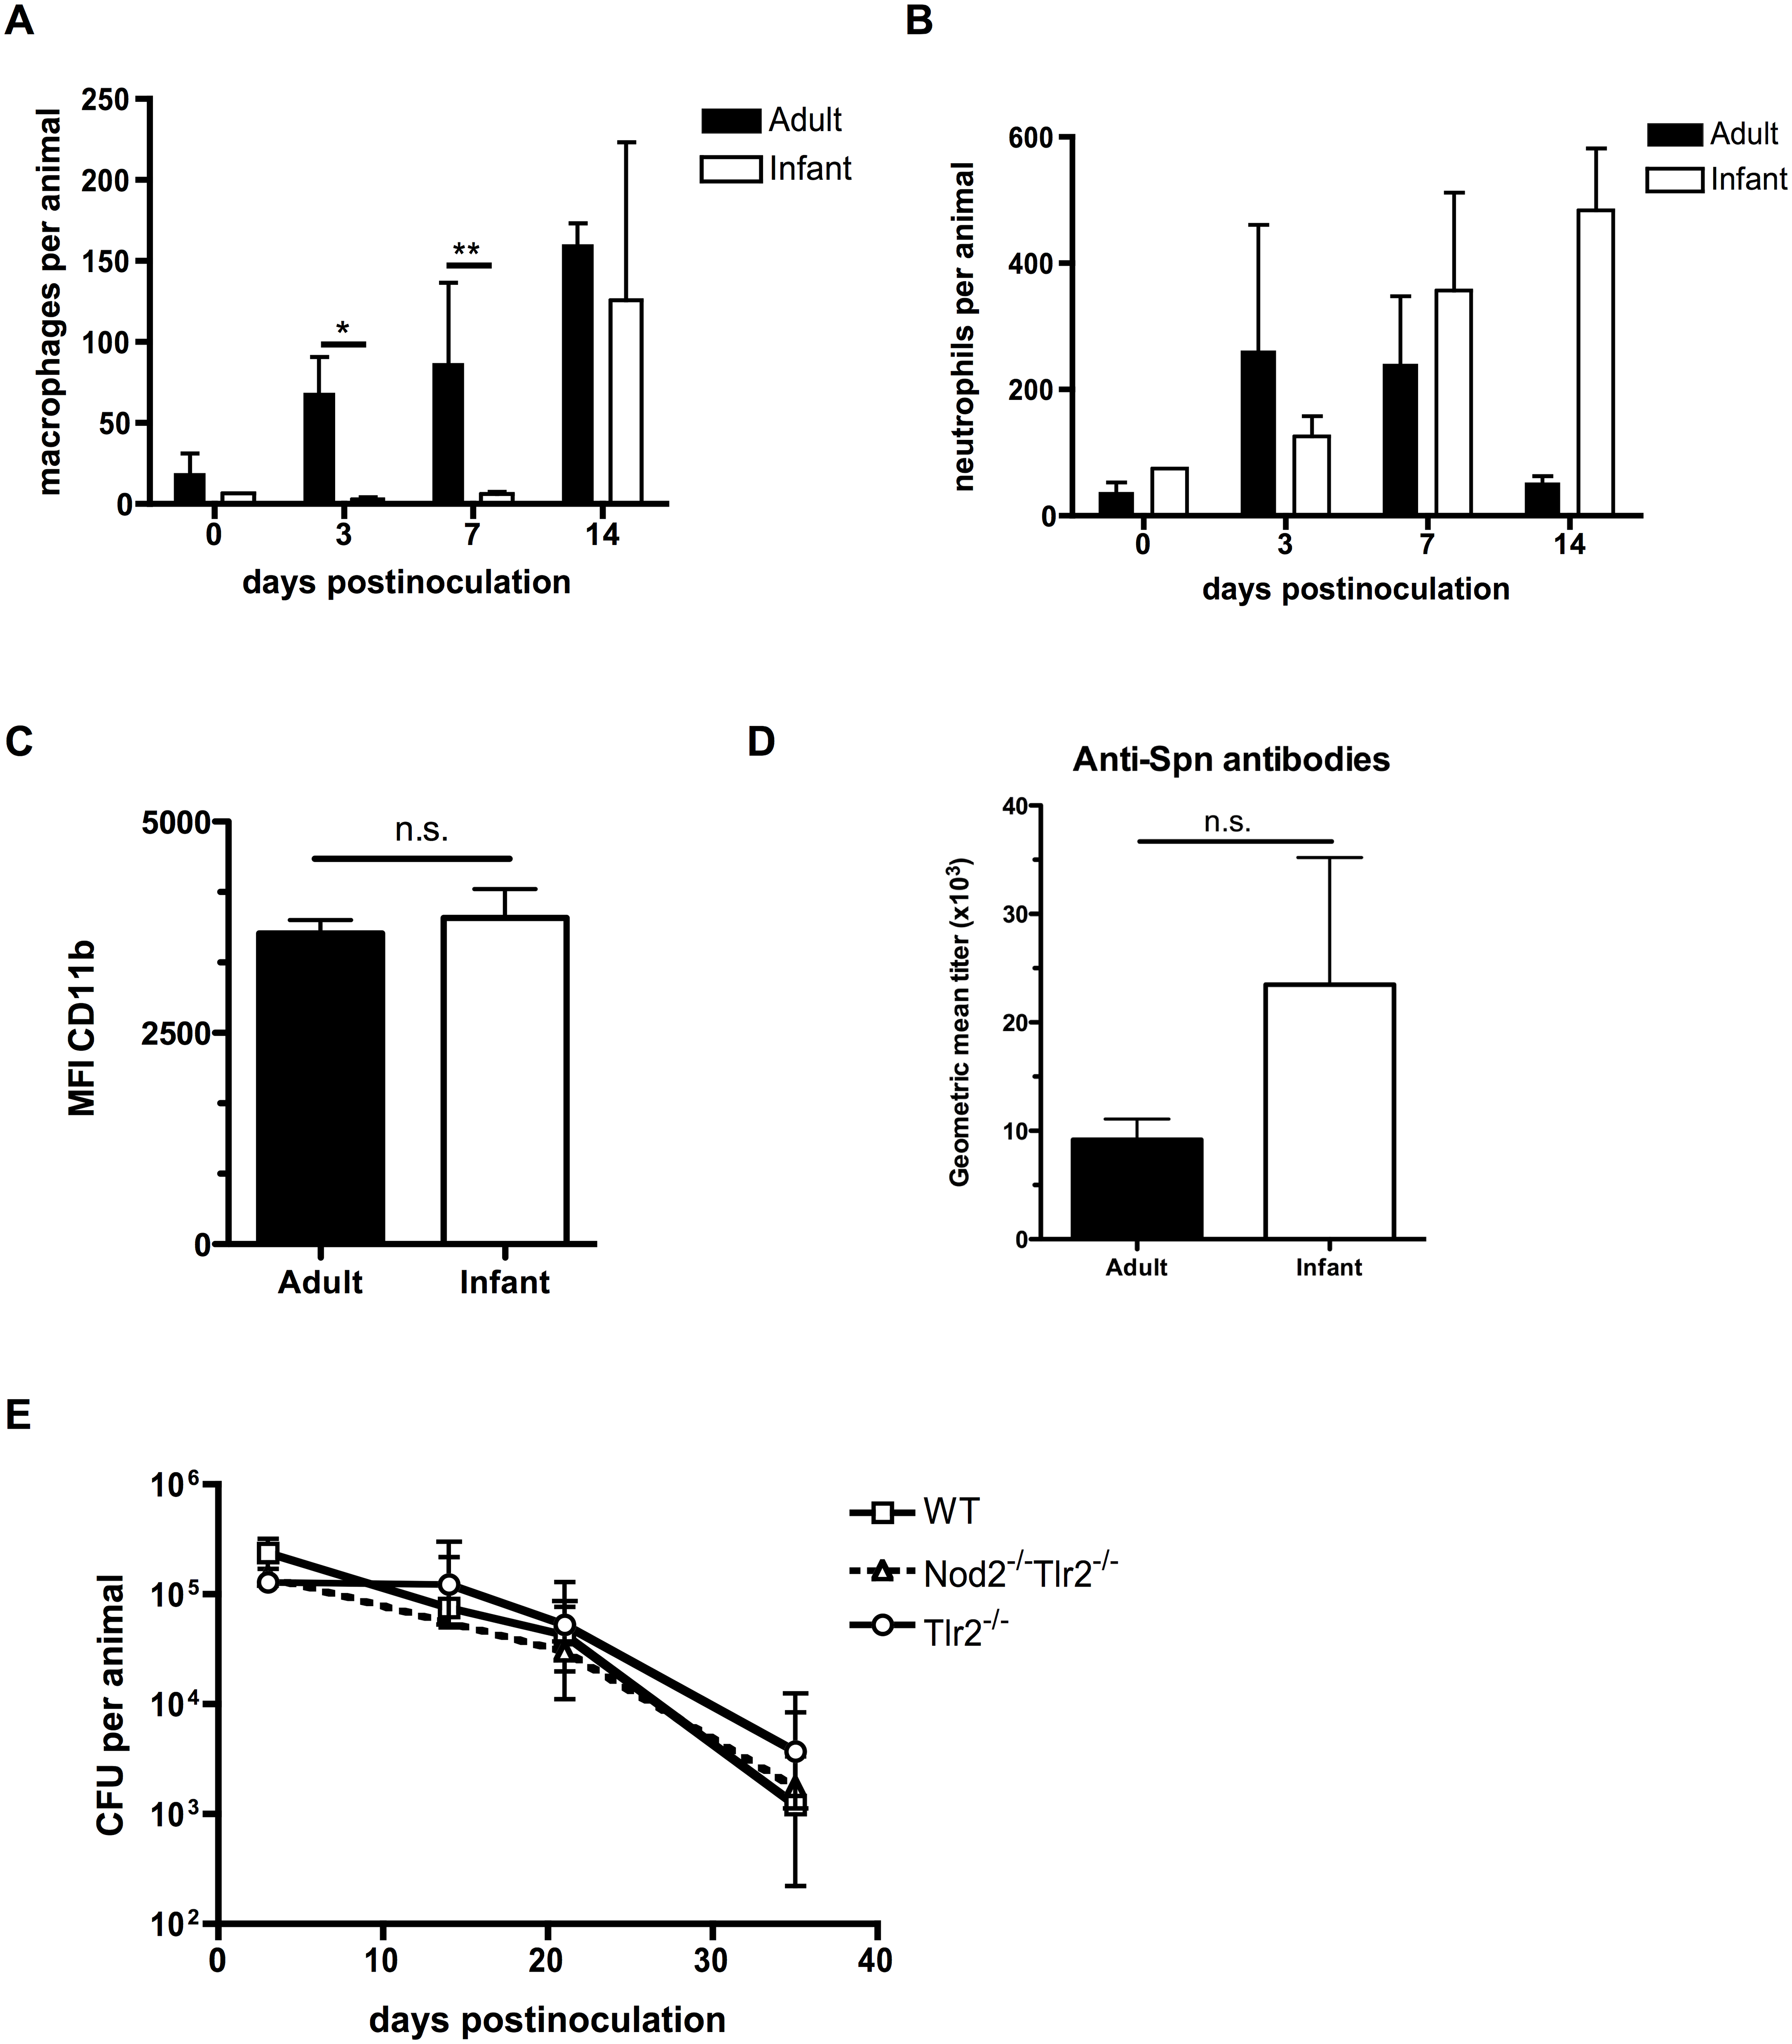 Infant mice are impaired in macrophage recruitment during colonization.